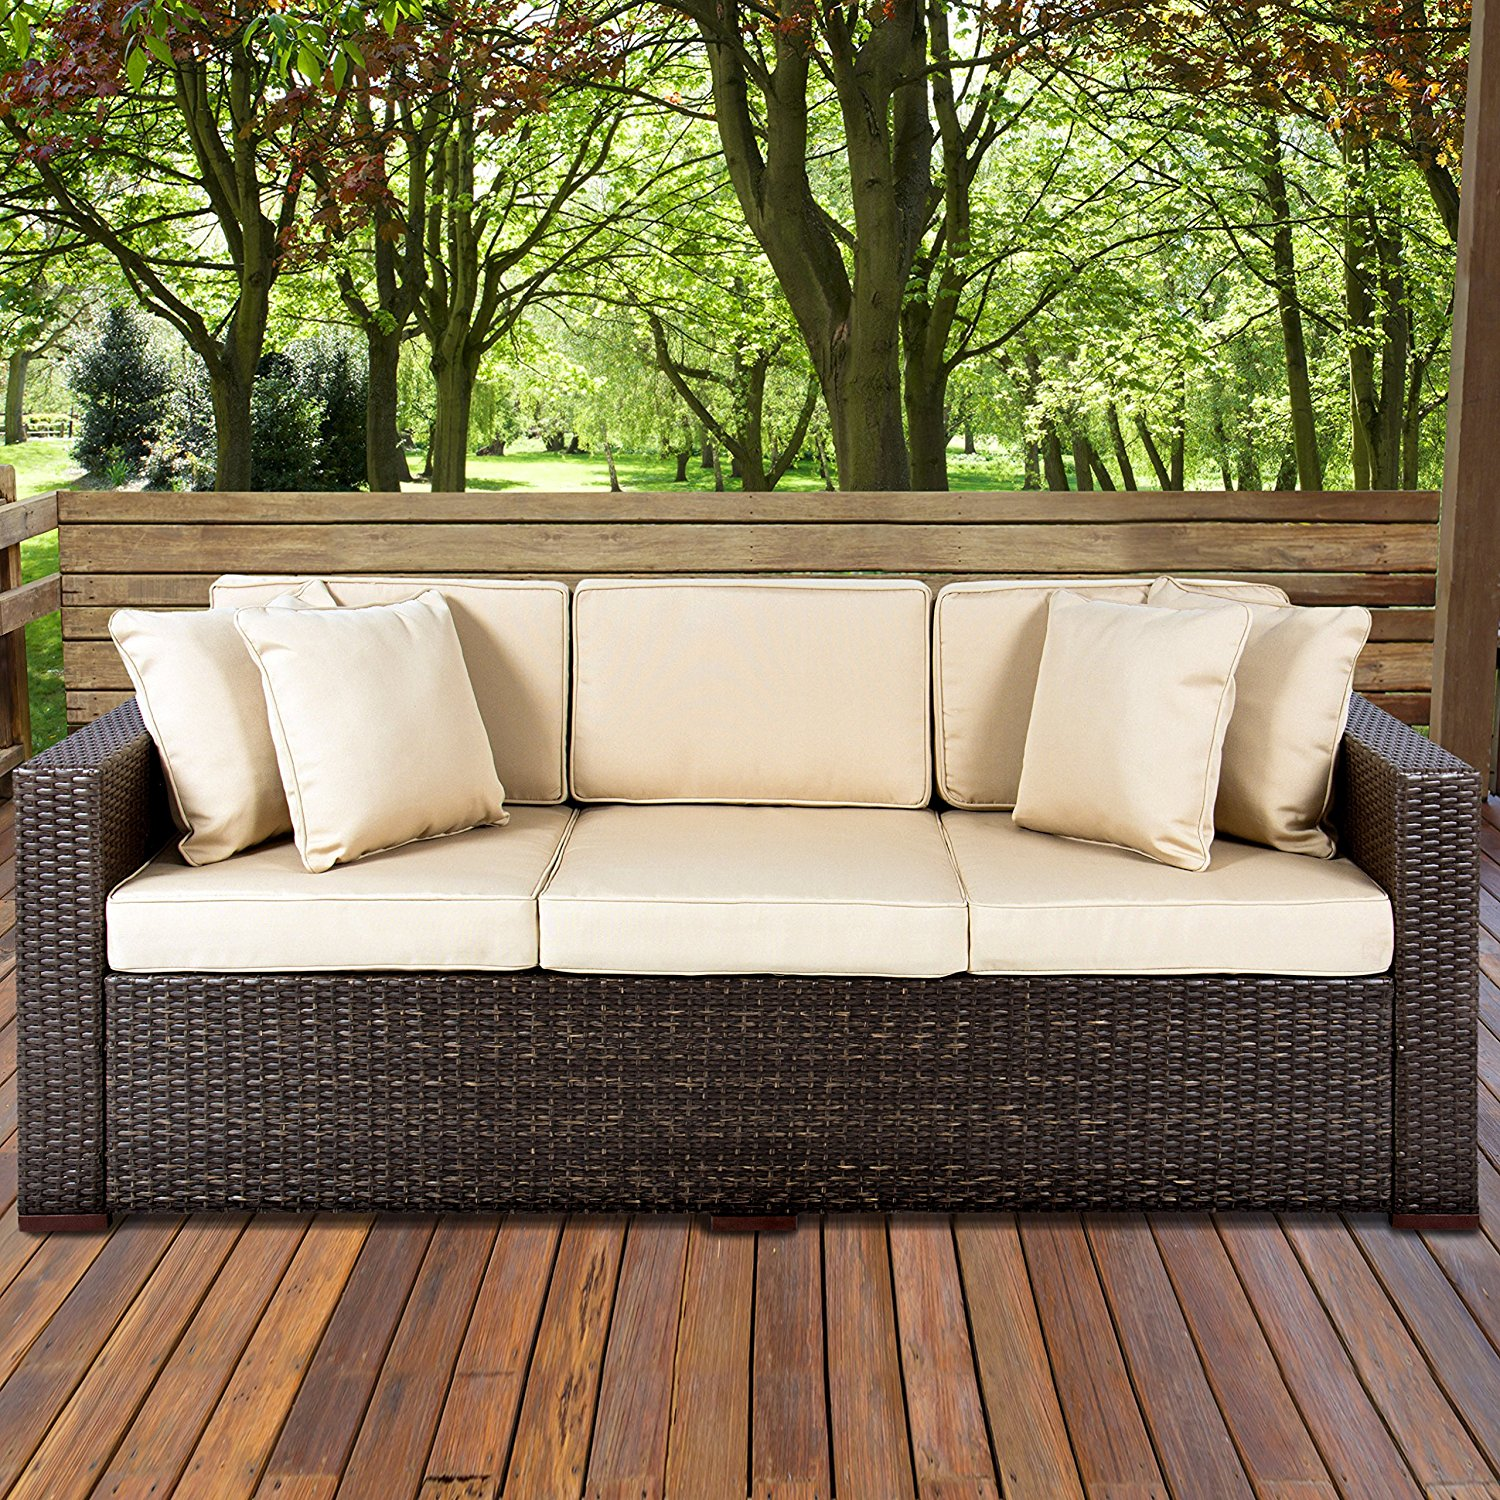 outdoor couch amazon.com : best choiceproducts outdoor wicker patio furniture sofa 3  seater luxury mrliflr